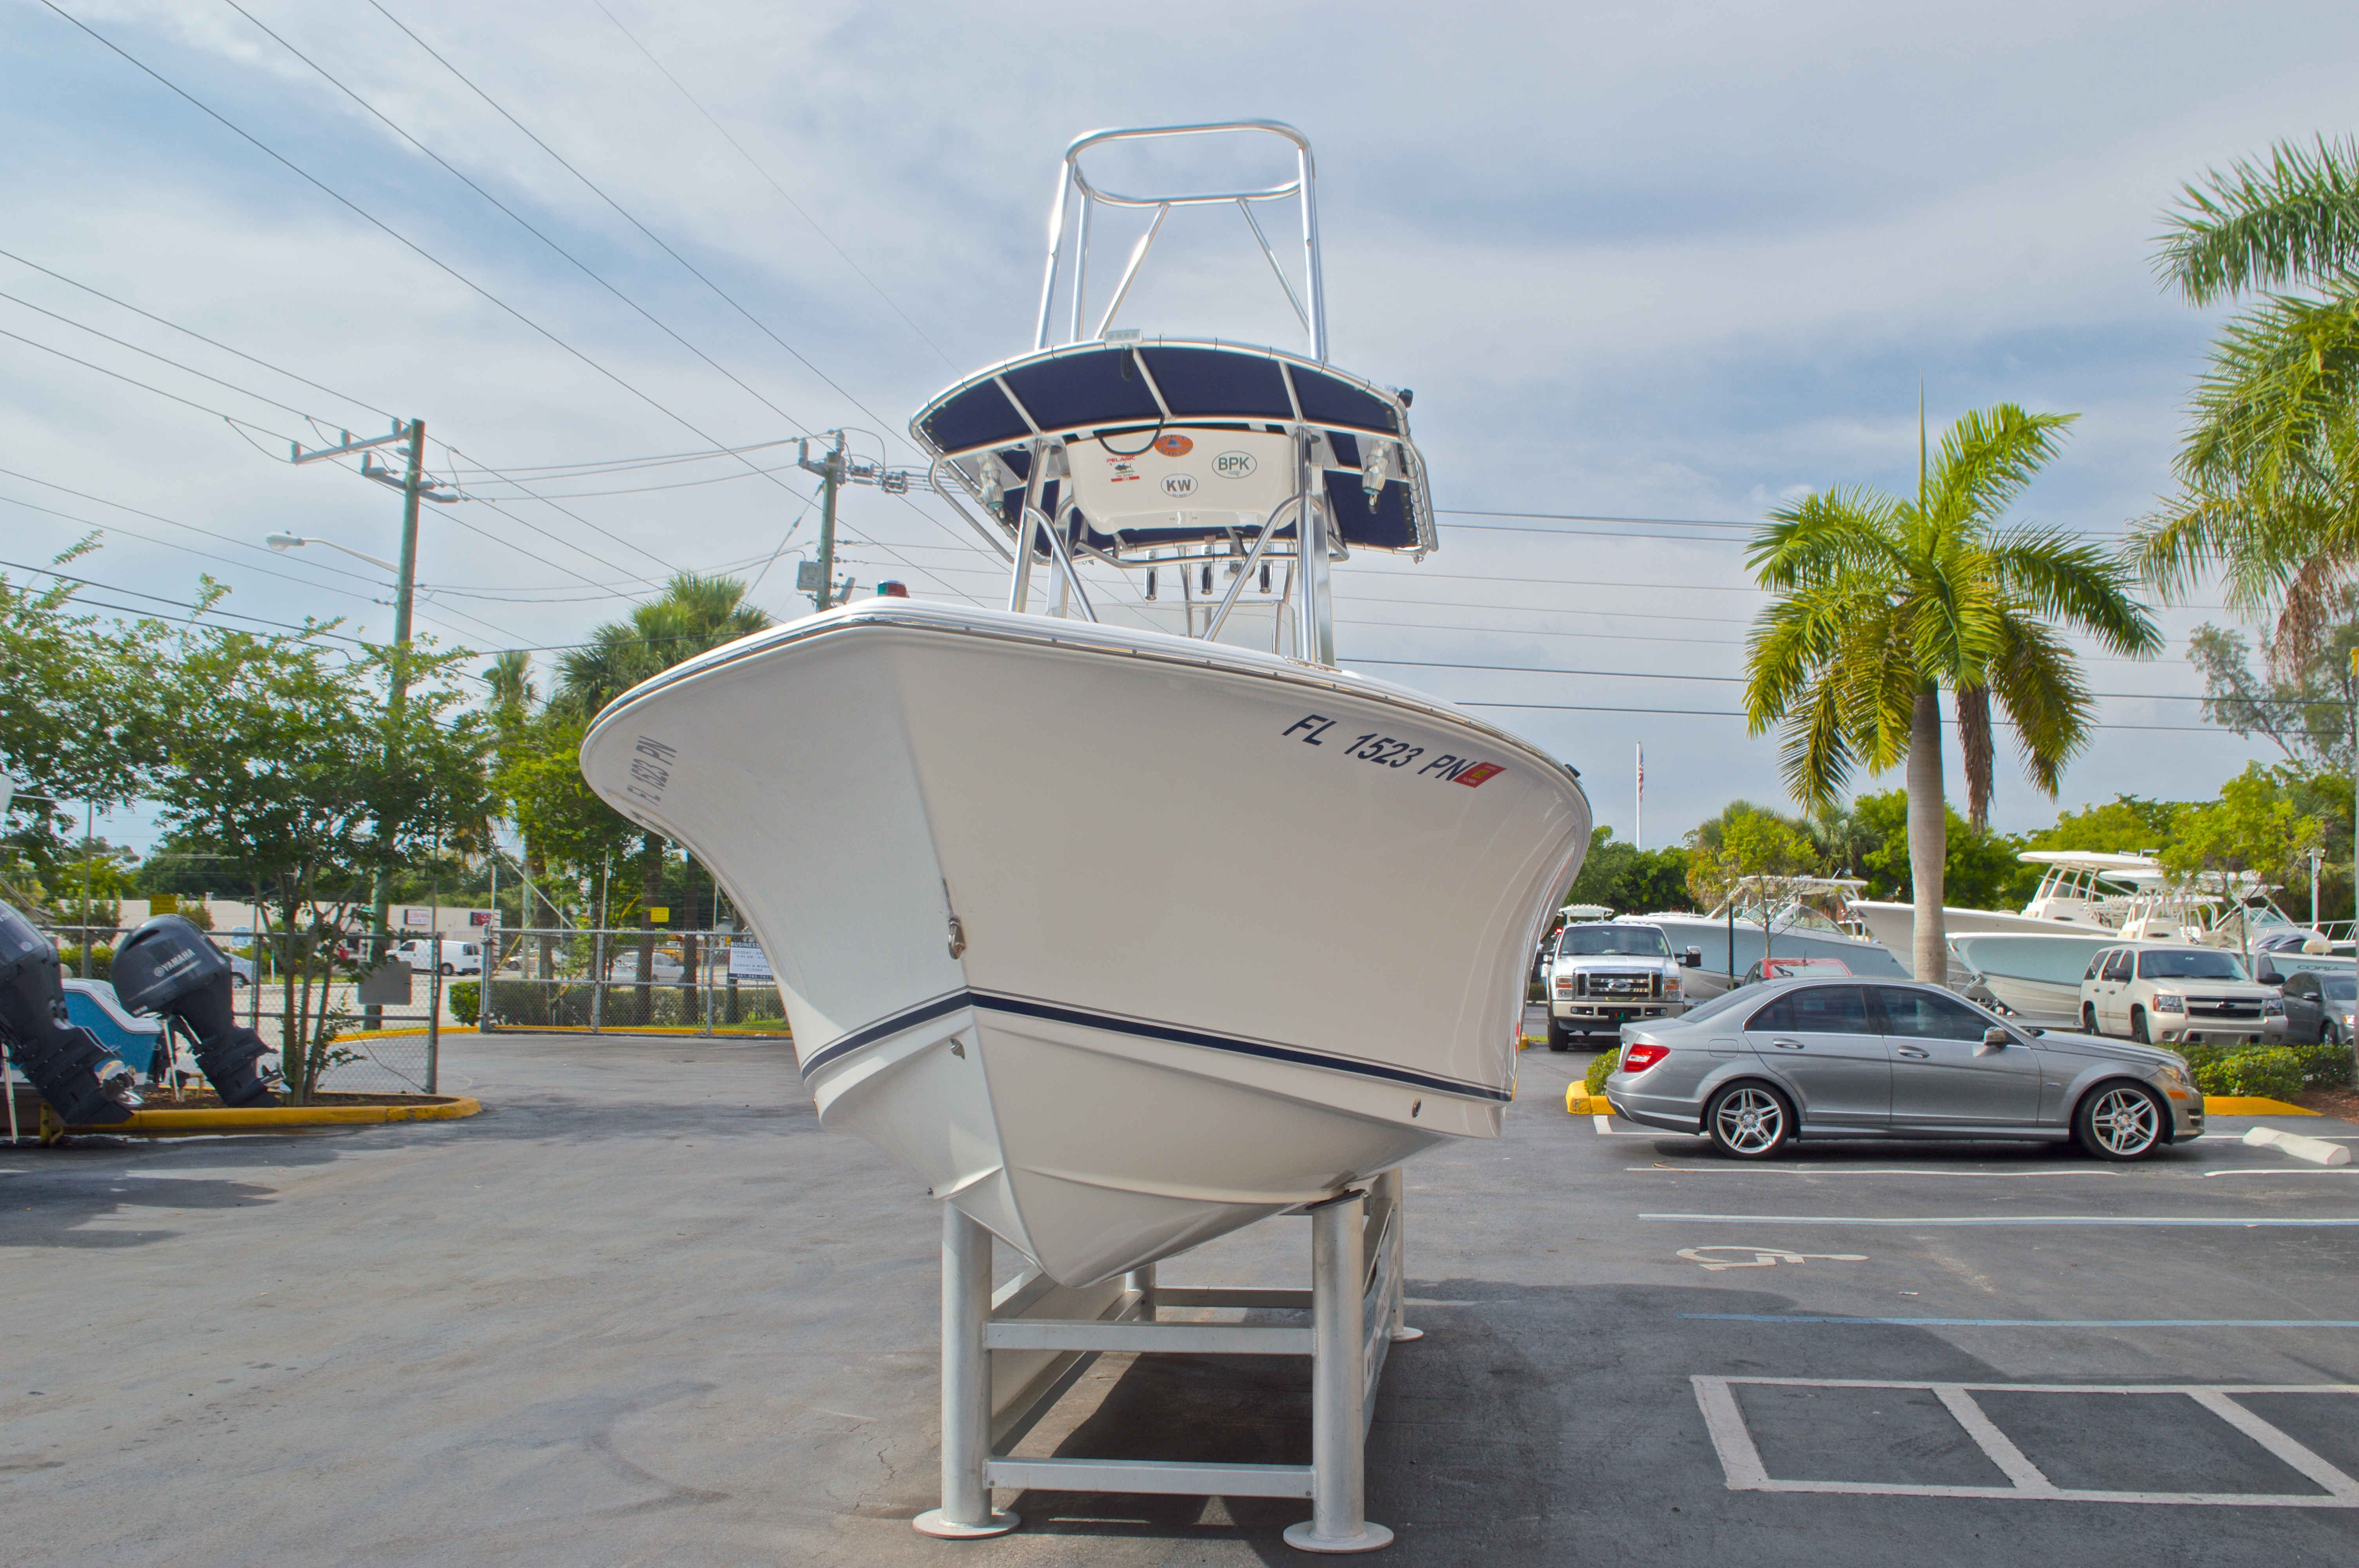 Thumbnail 10 for Used 2013 Sea Hunt 210 Triton boat for sale in West Palm Beach, FL